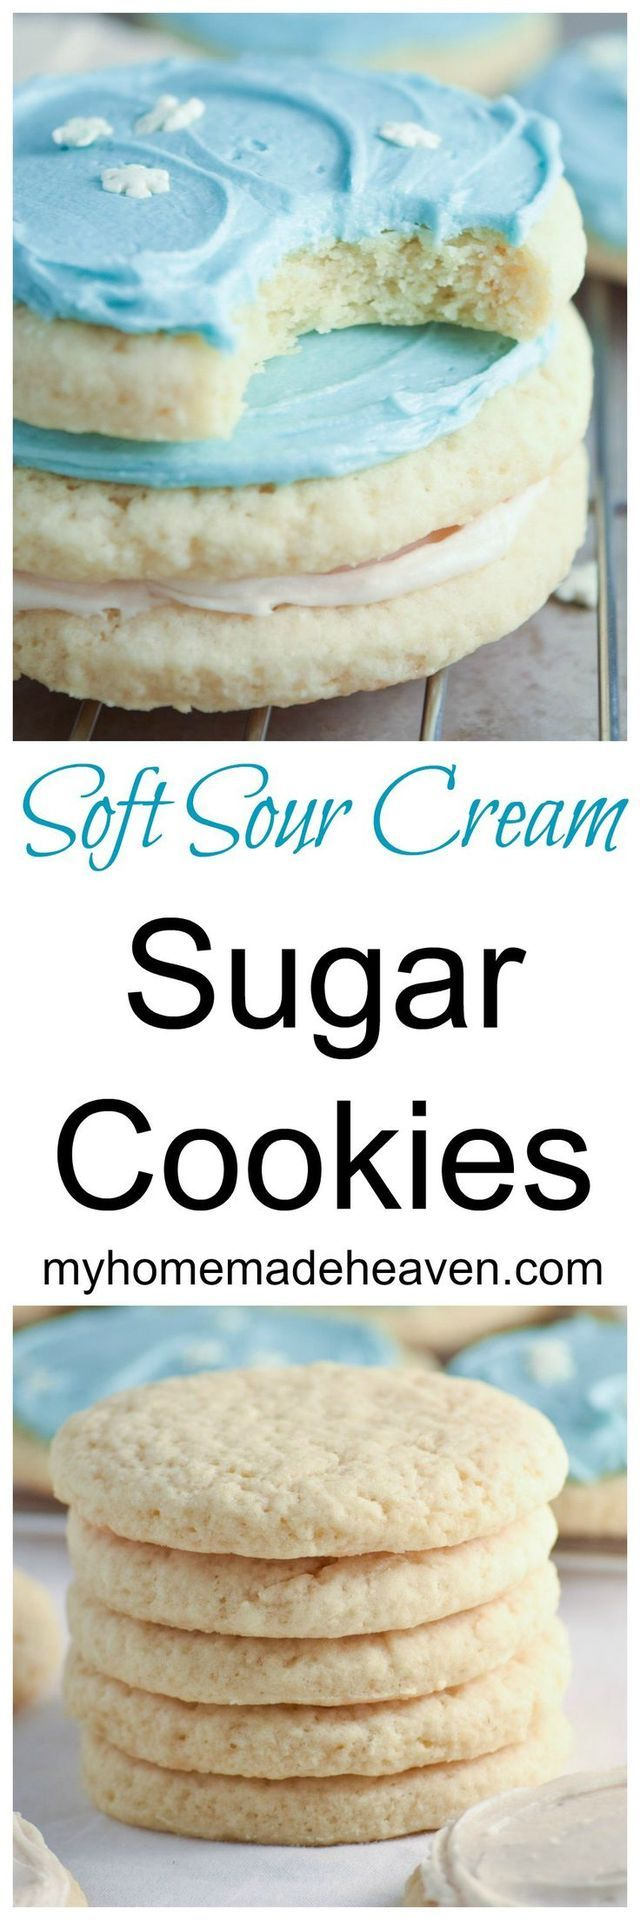 Soft Sour Cream Sugar Cookies - Wow! We just made these and they are SO soft! This recipe is definitely a keeper!